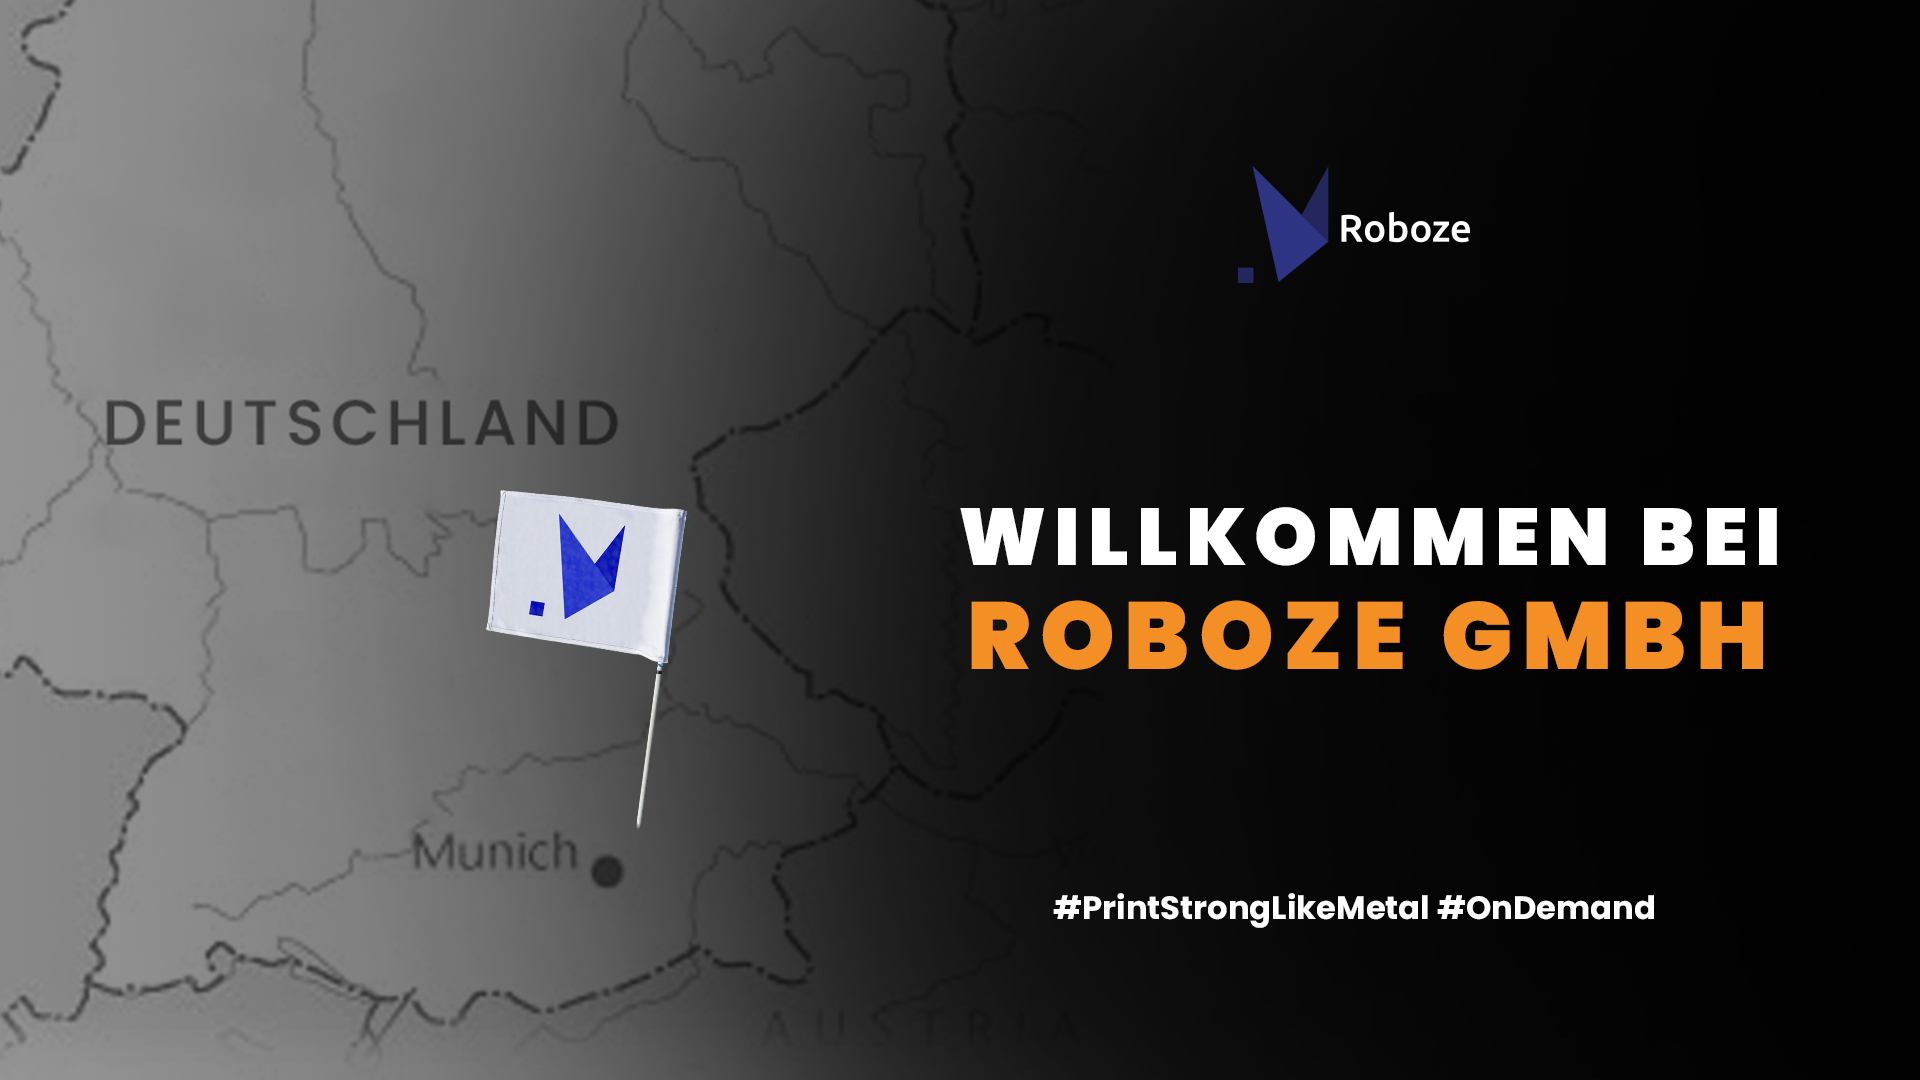 ROBOZE has opened a new 3D printing facility in Munich with the aim of expanding its business in Germany. Image via ROBOZE.